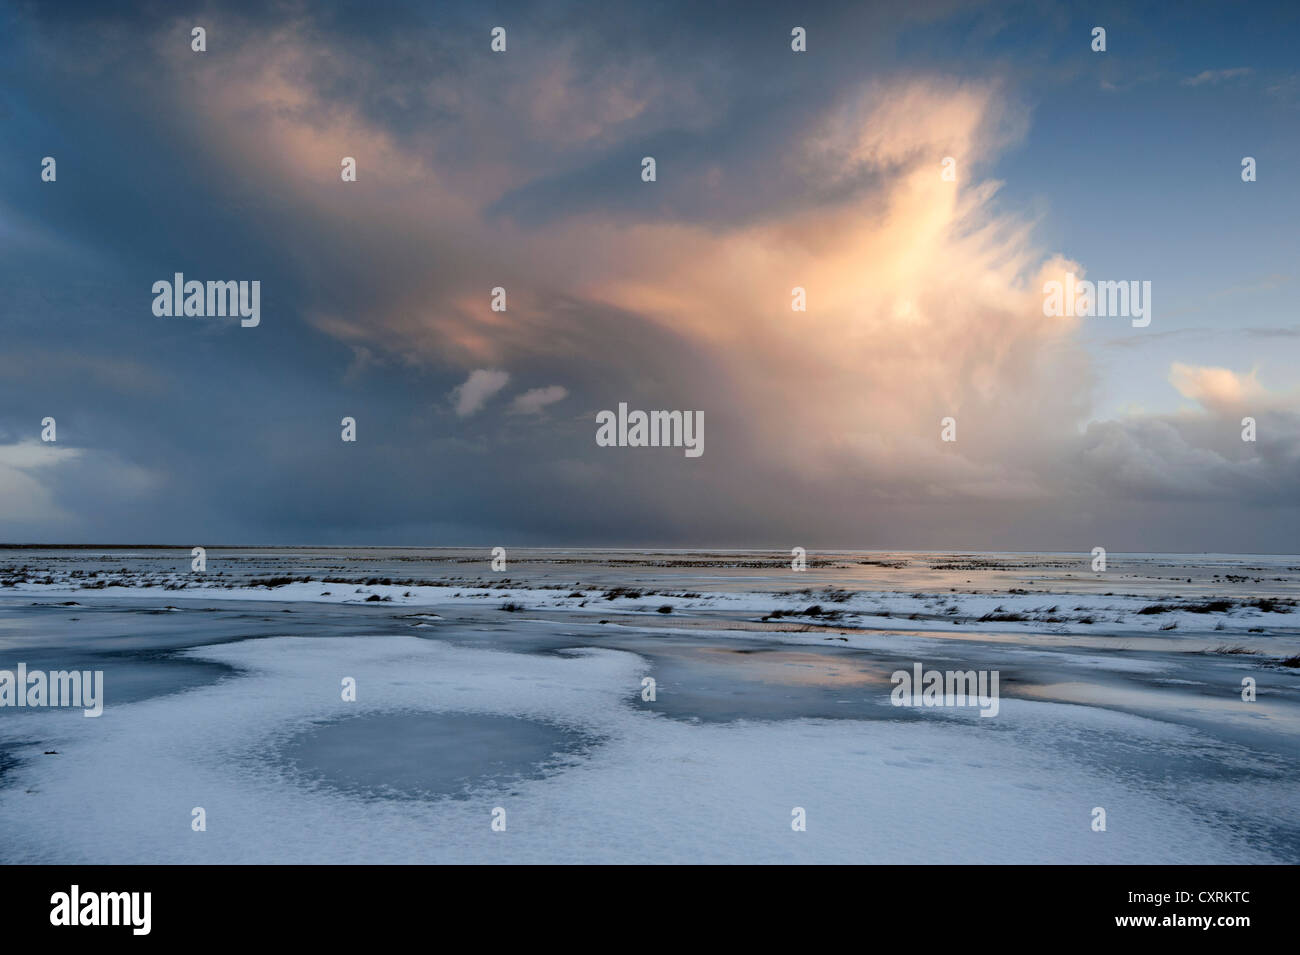 Cumulonimbus cloud over the snow-covered coastal landscape at dusk, South Iceland, Iceland, Europe, - Stock Image